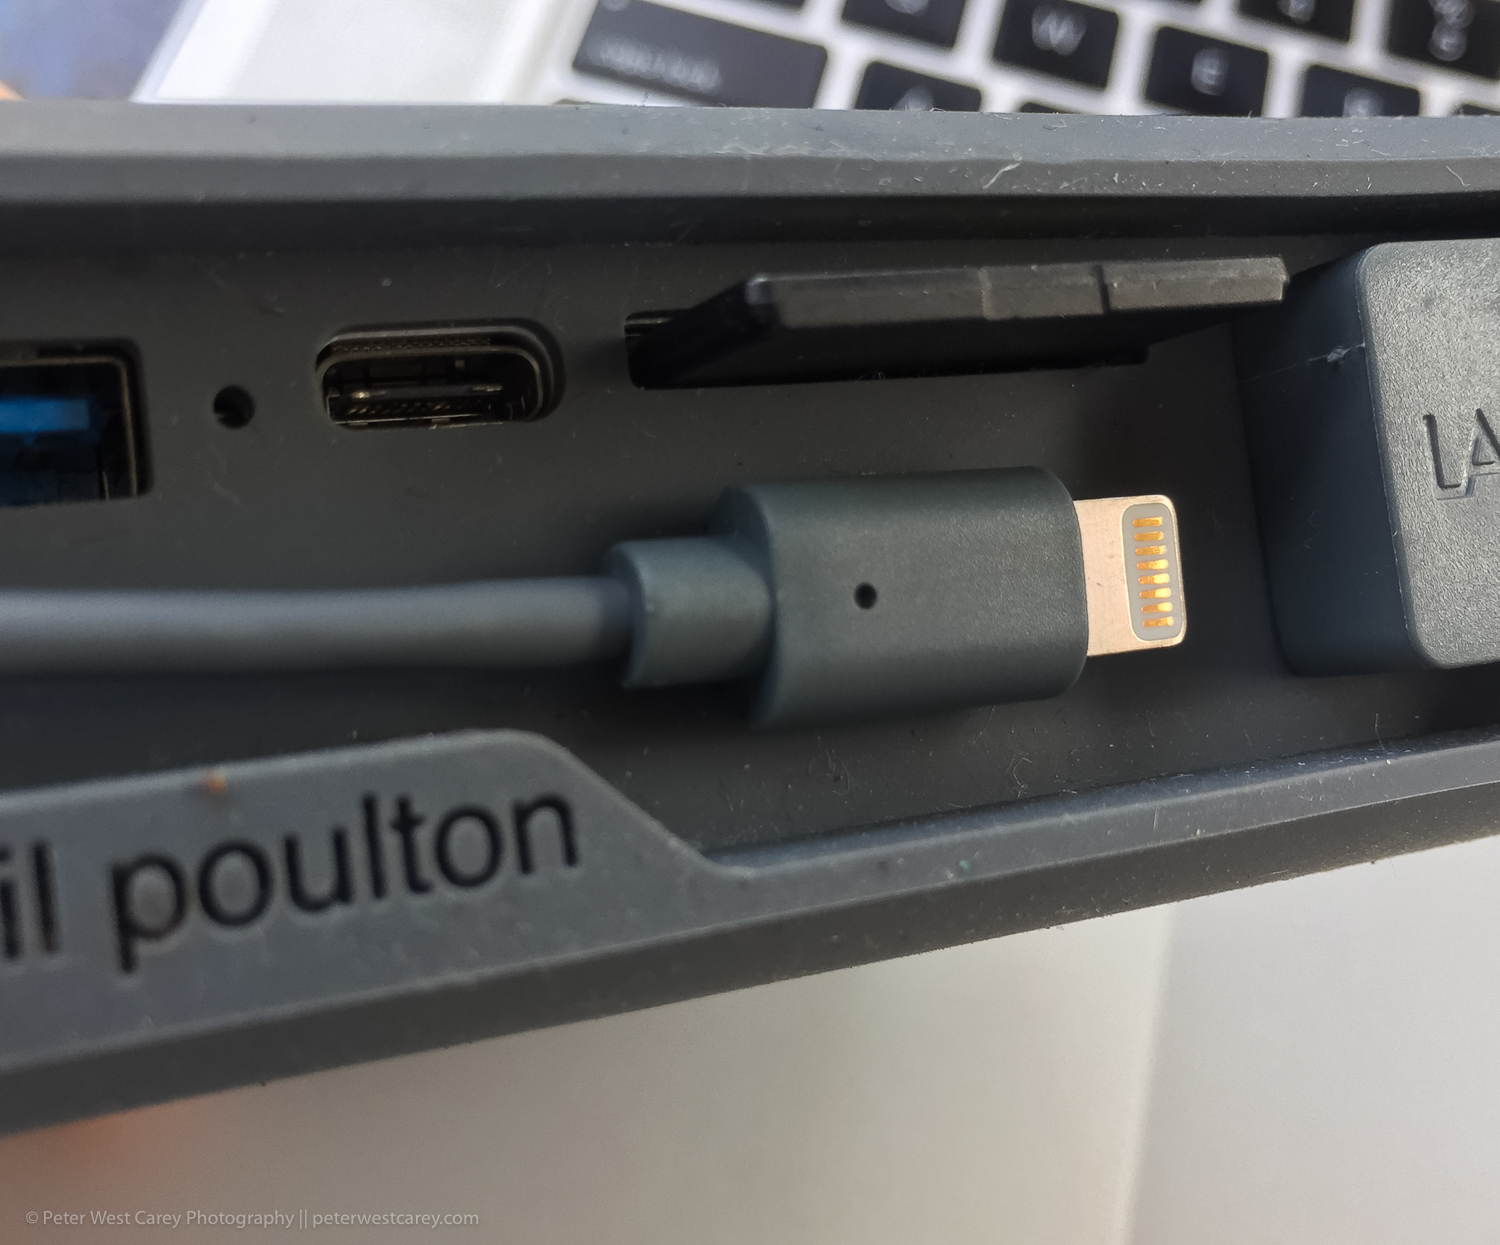 REVIEW: LaCie DJI Copilot BOSS External Hard Drive